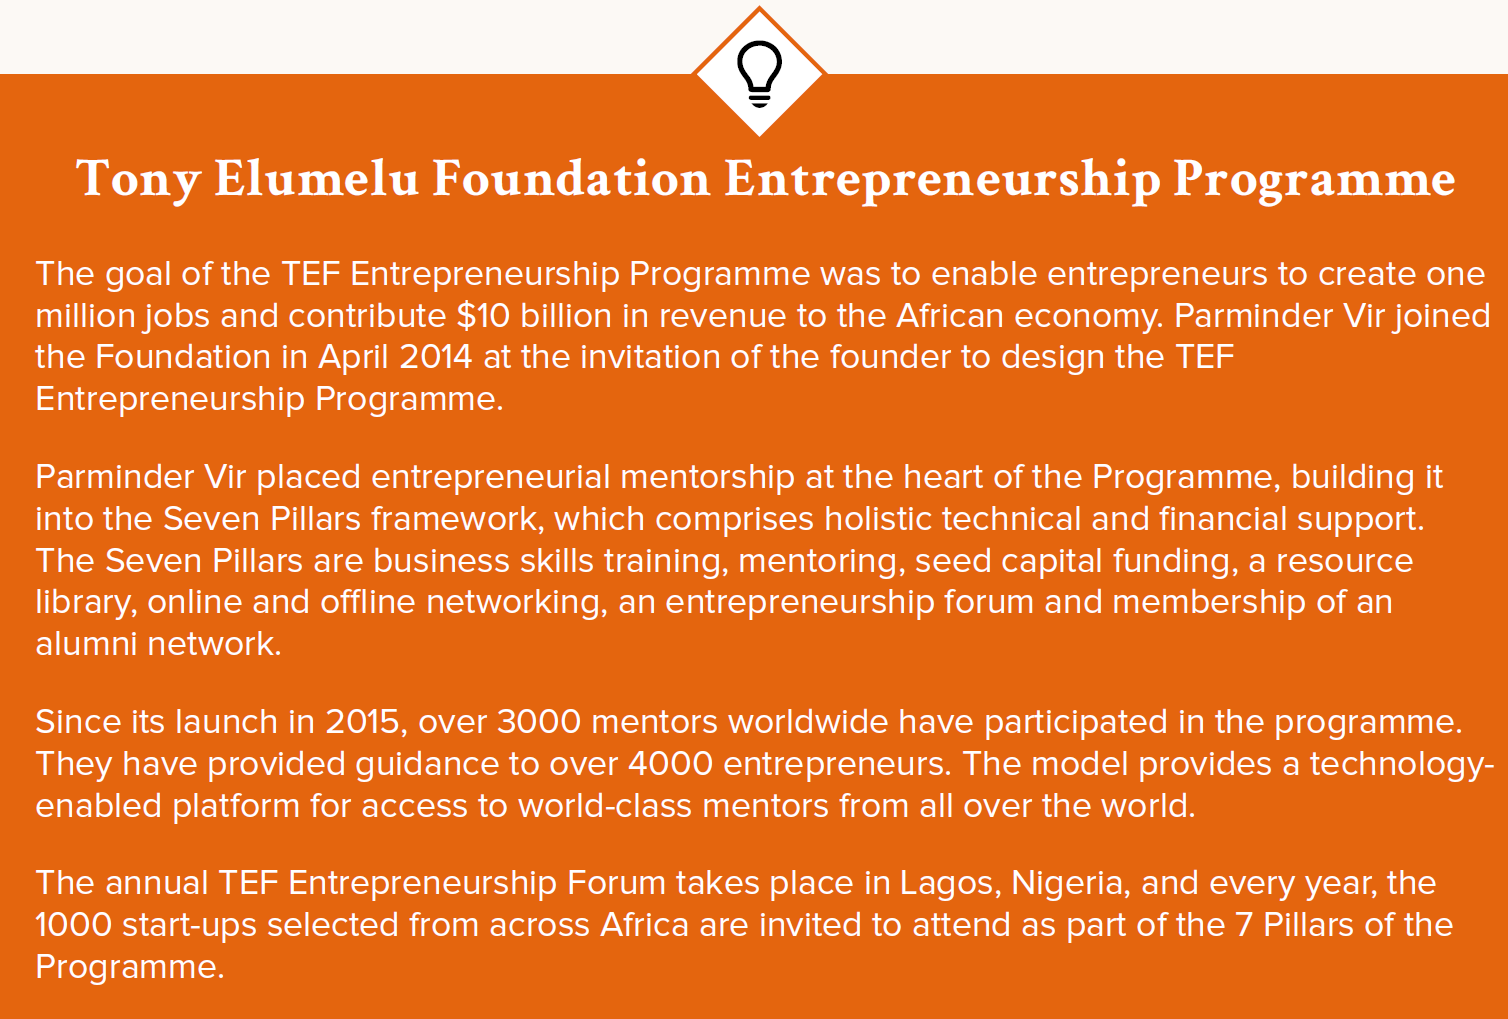 Elumelu-foundation-entreprenrurship-programme